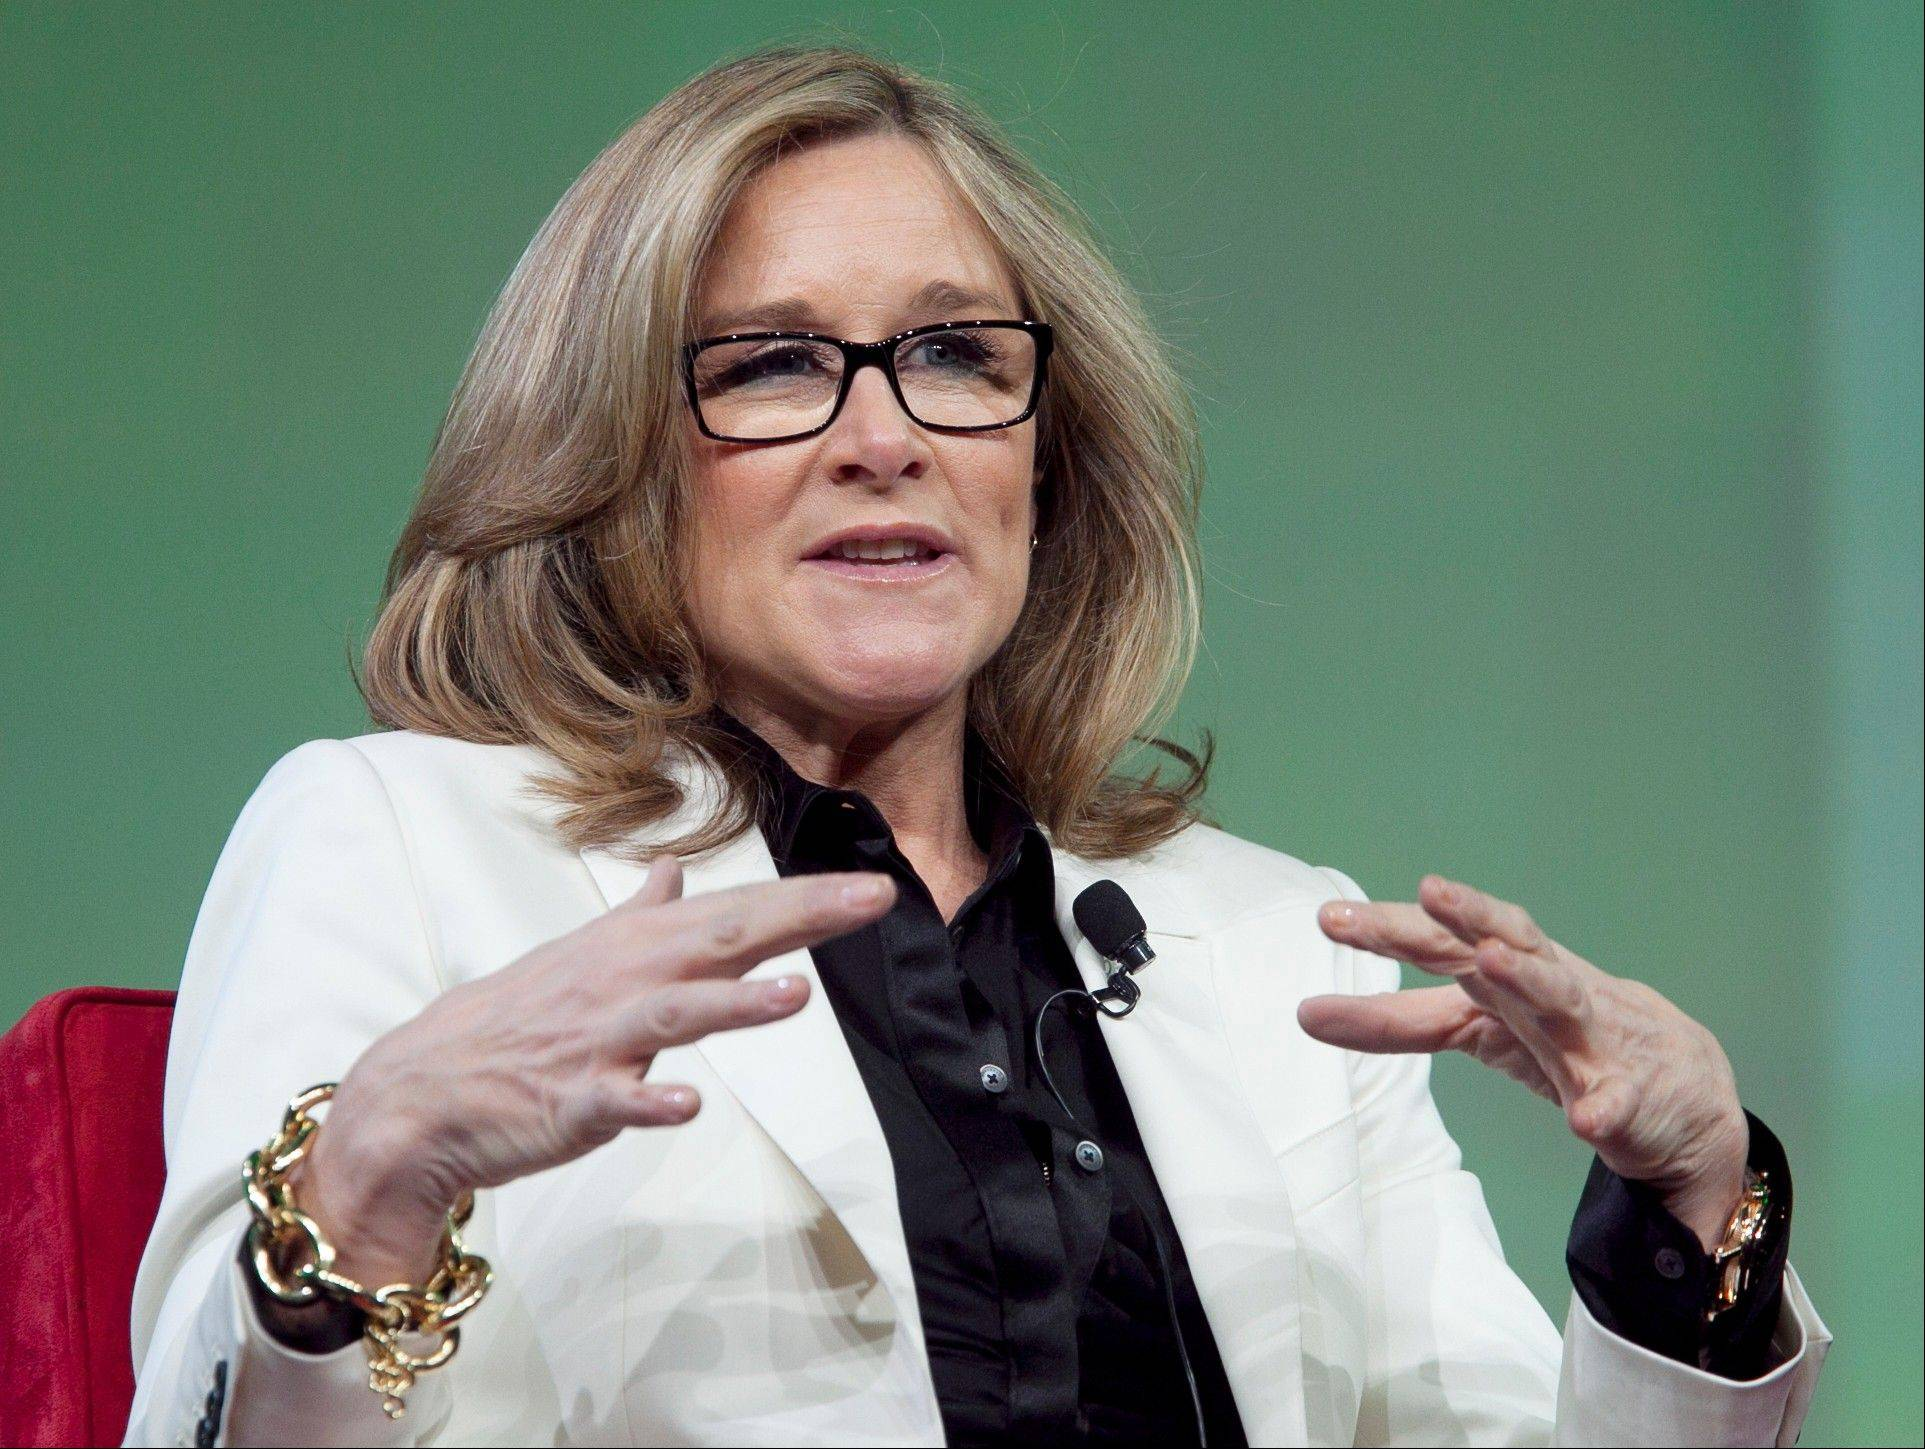 Angela Ahrendts, who used technology to drive a remarkable turnaround at Burberry, will take charge of Apple's expansion plans and retail operation, as she will become a senior vice president at the company next spring.